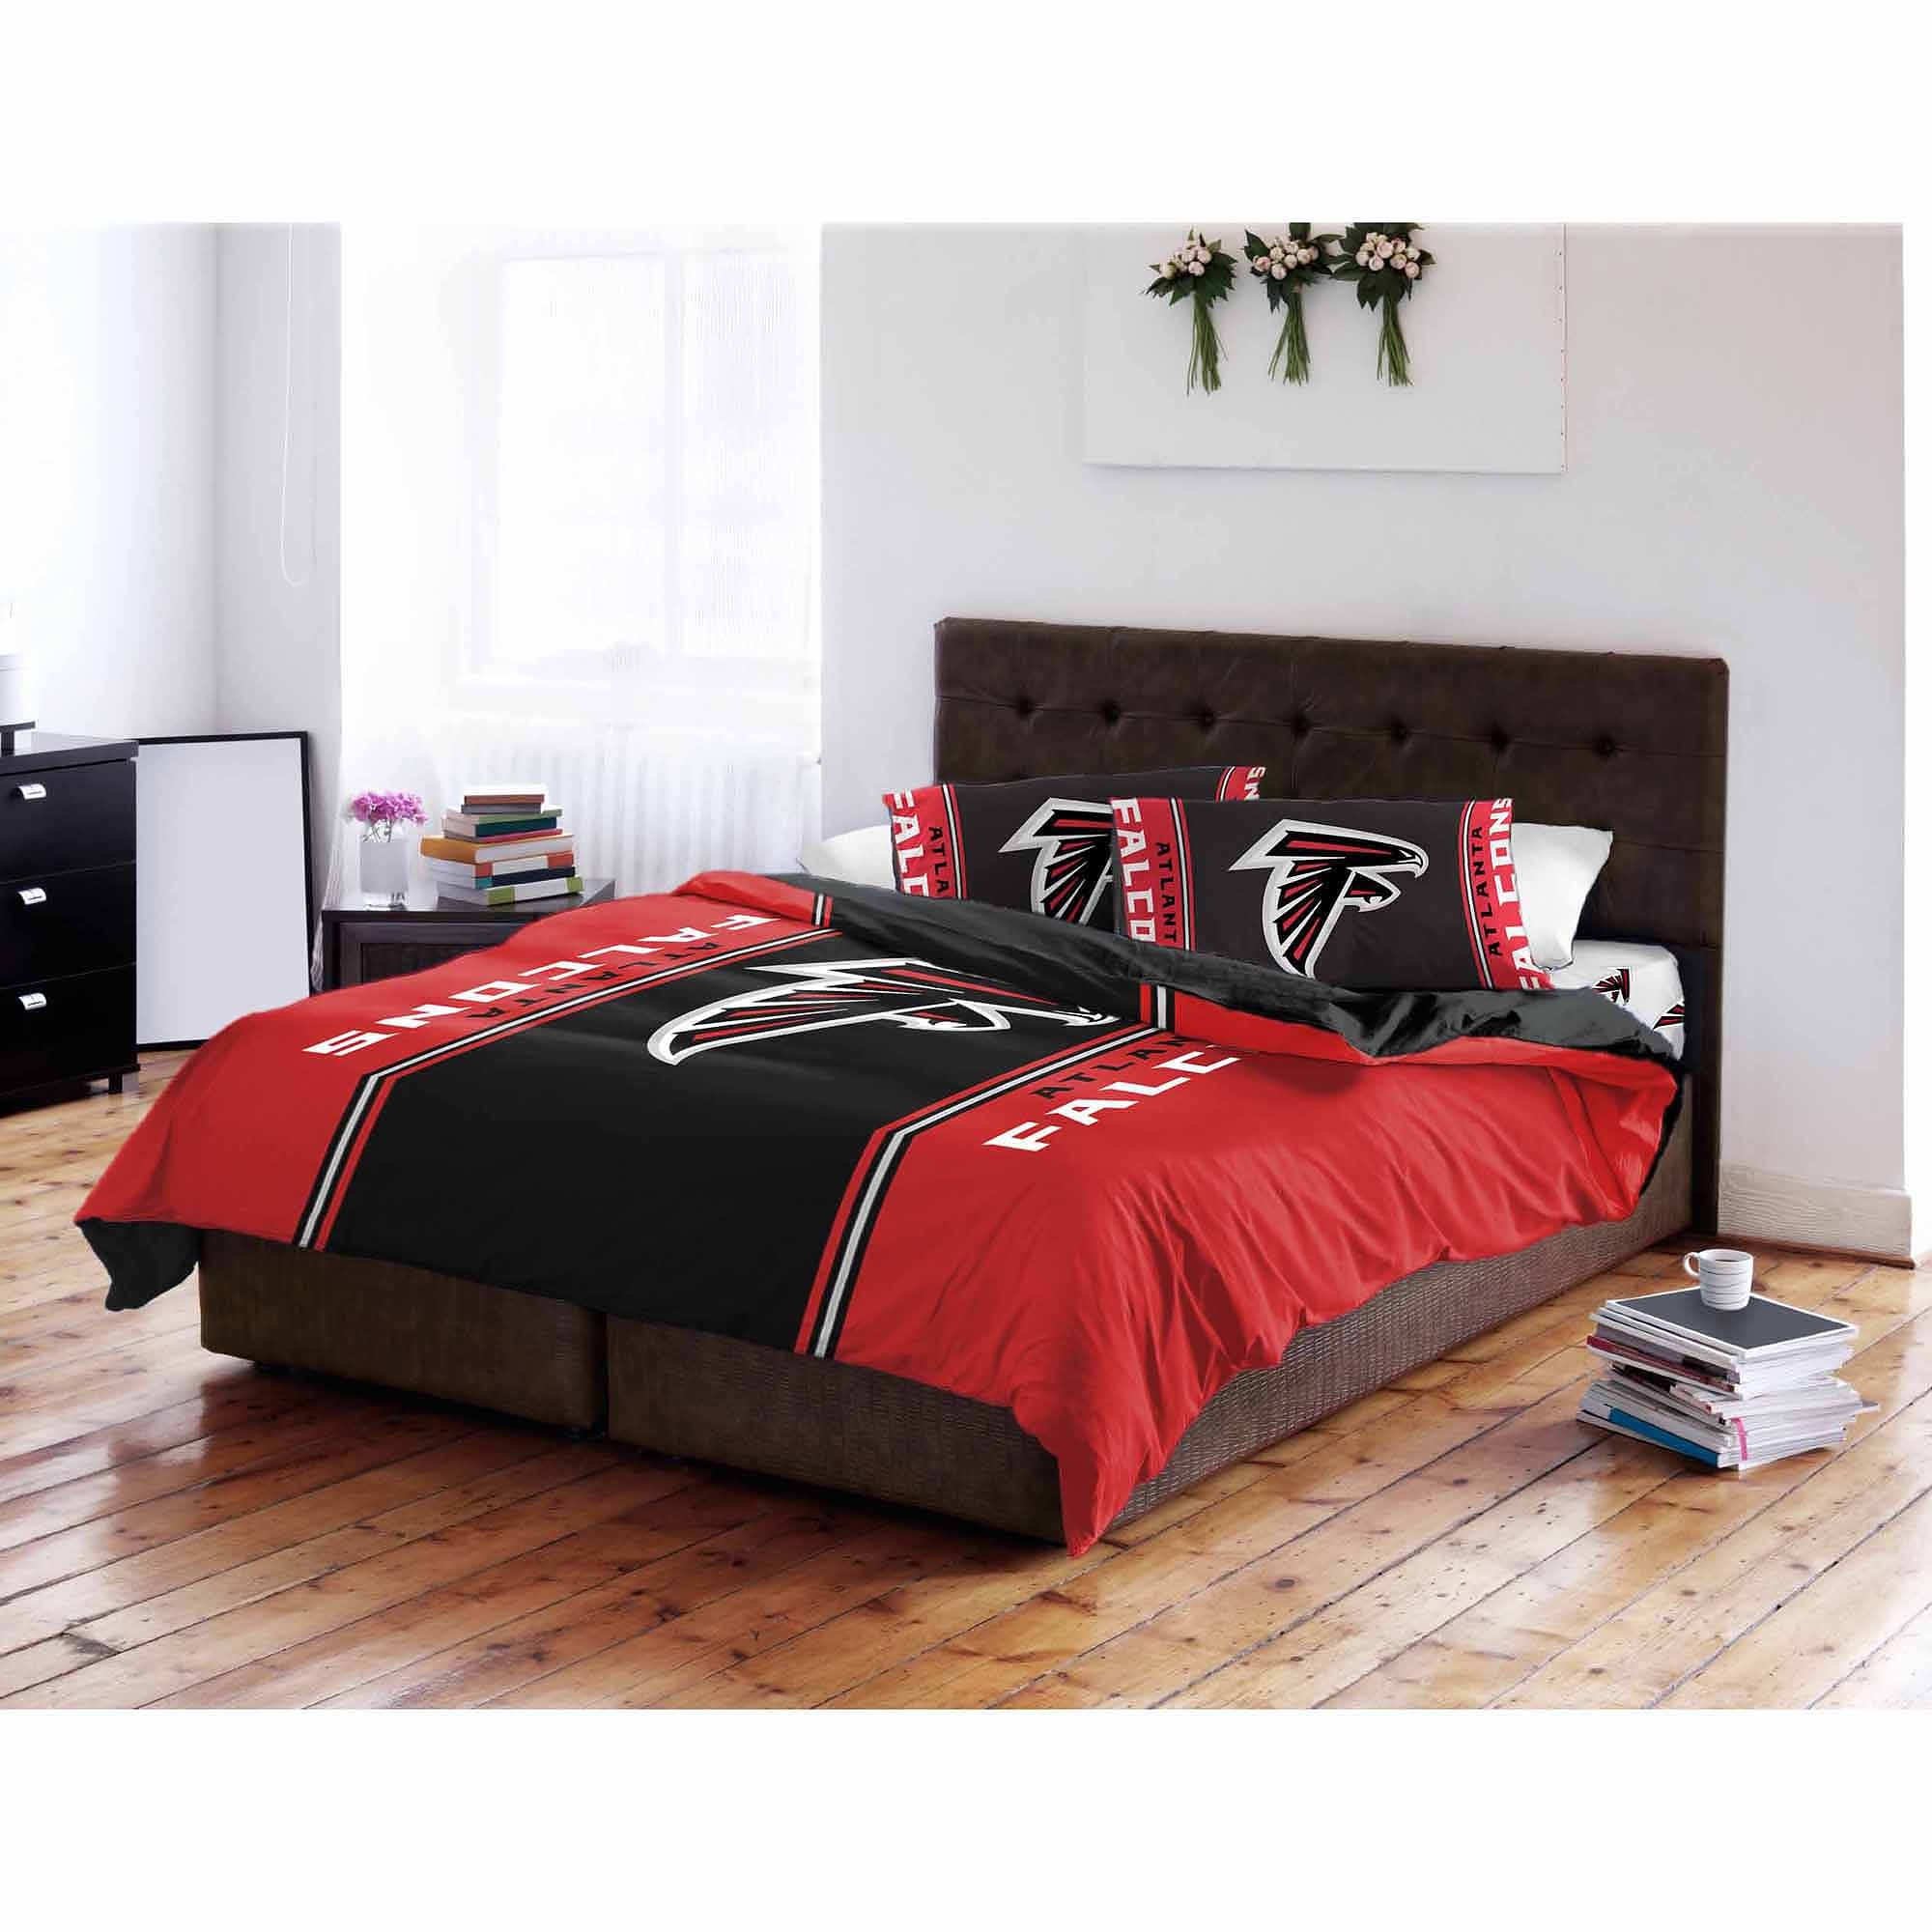 NFL Atlanta Falcons Twin Full Bedding forter Walmart